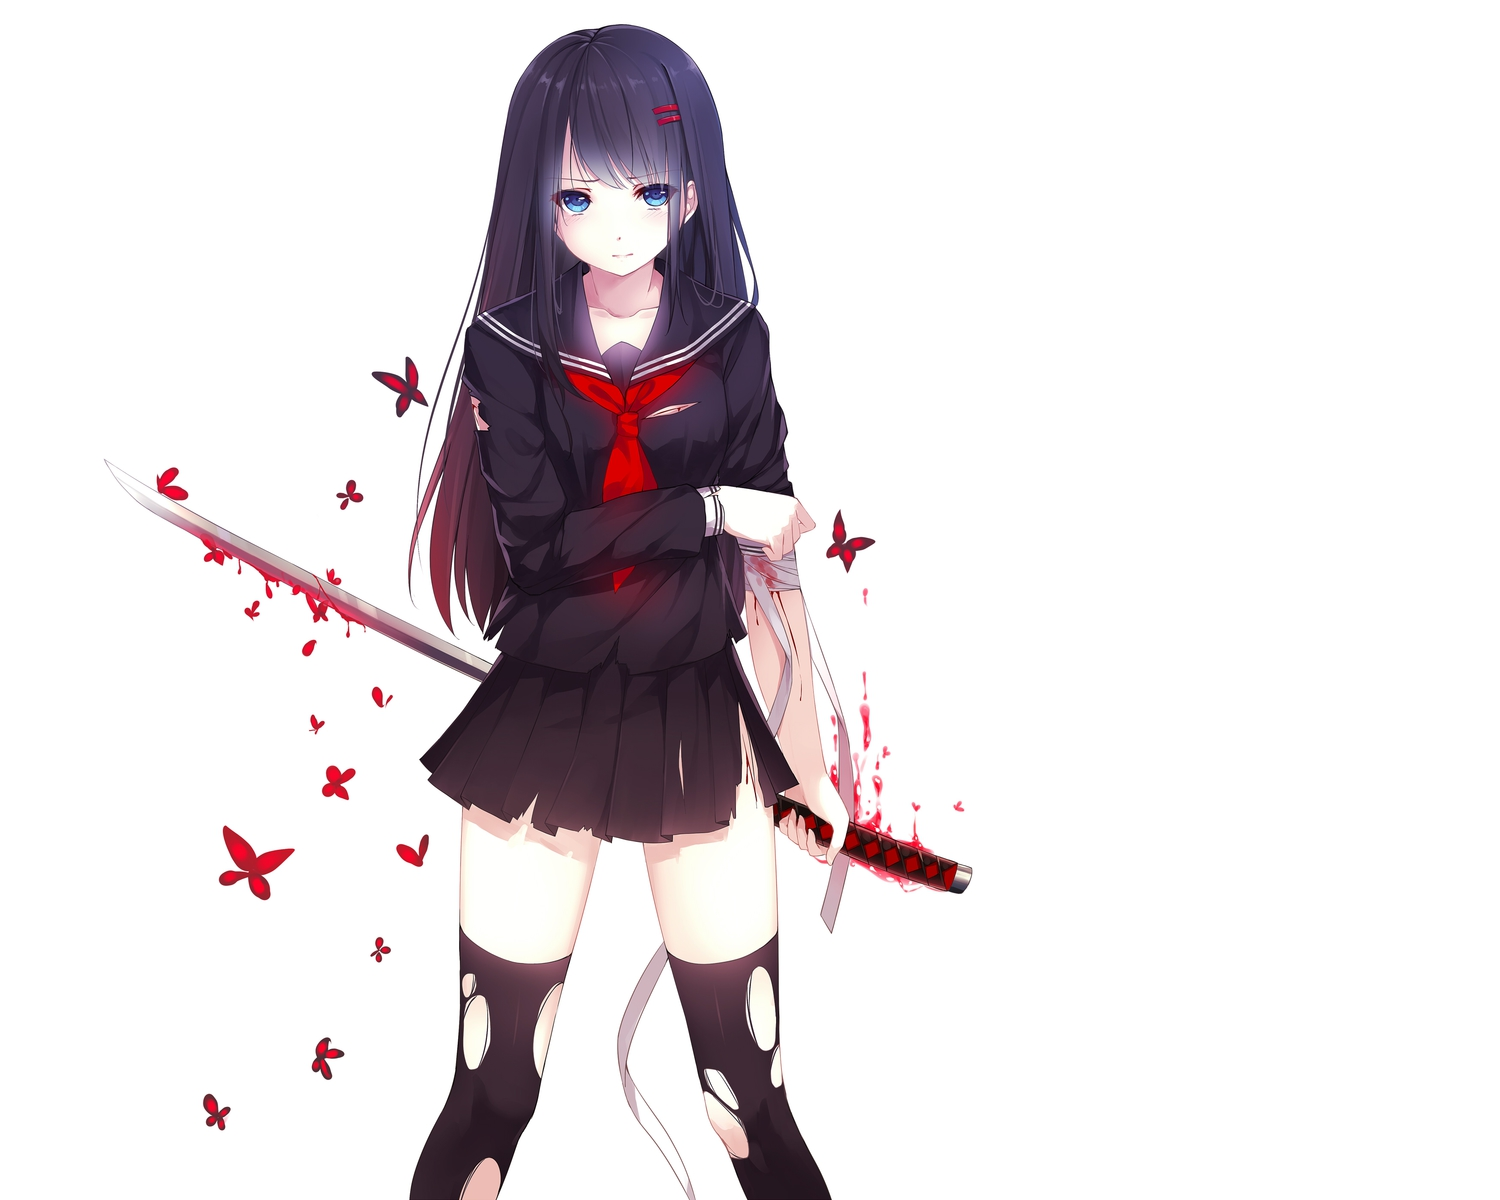 Anime girl with black hair and sword